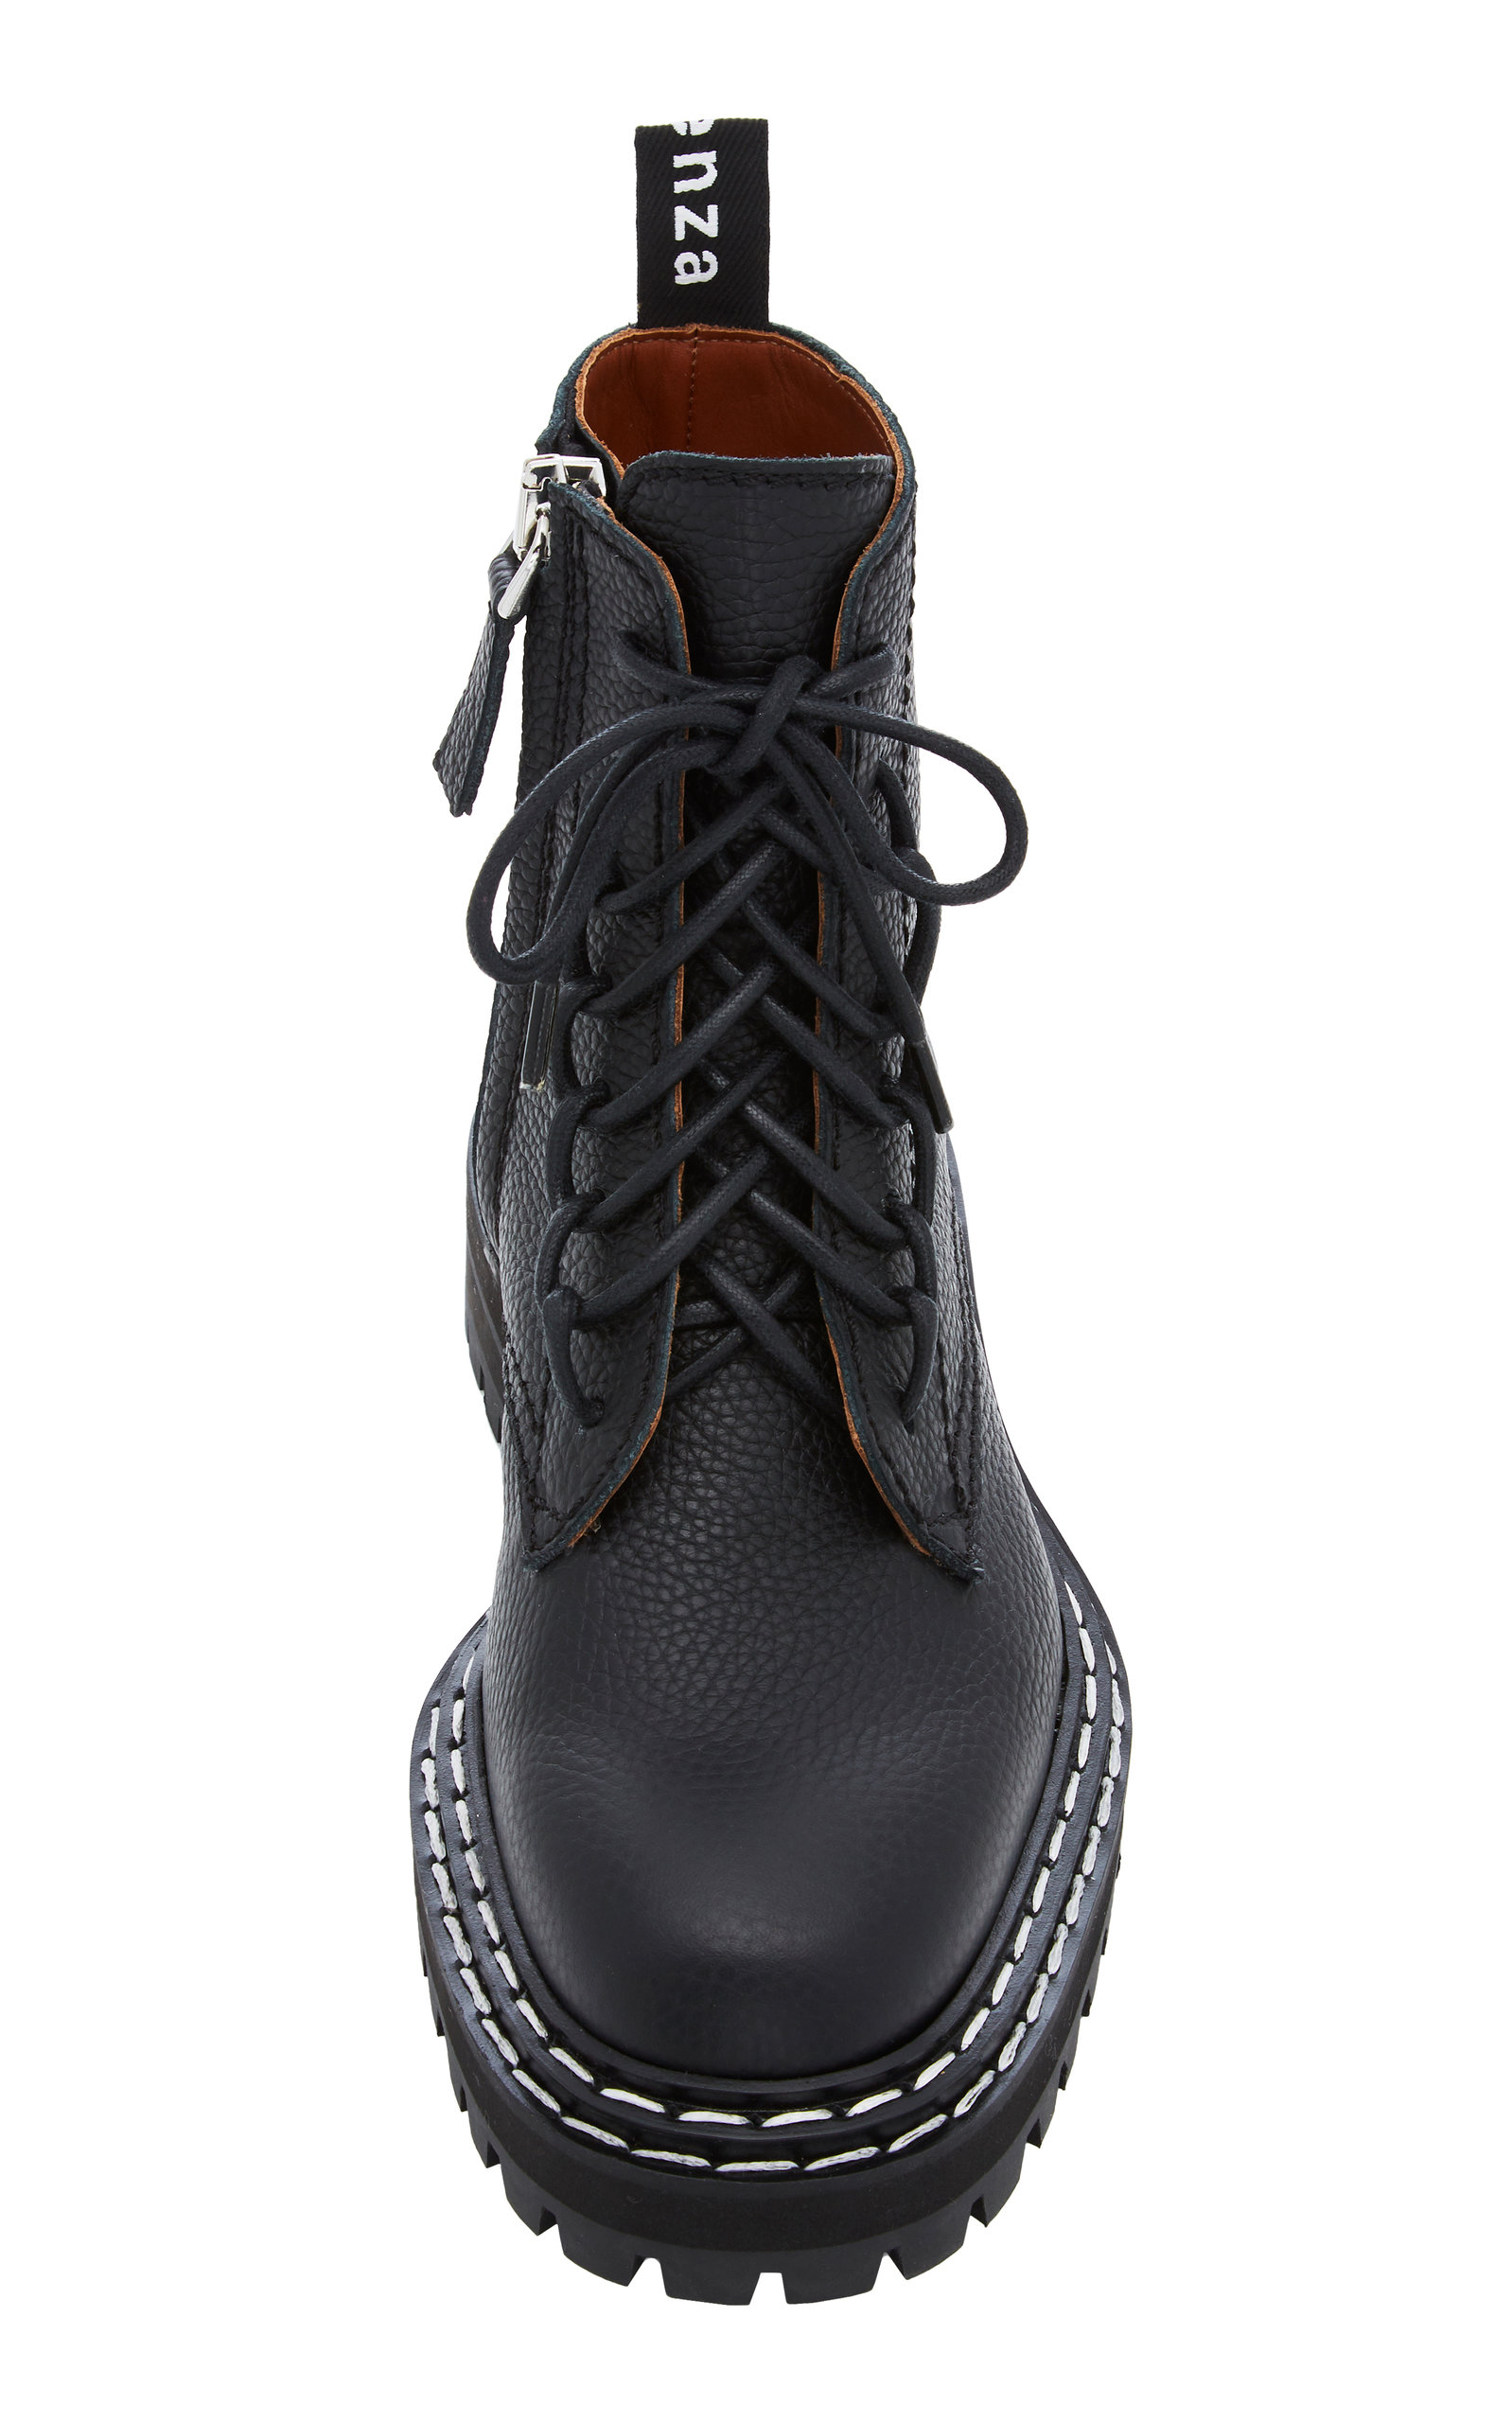 b9ca353debf Proenza Schouler Leather Contrast-Stitched Combat Boots in 2019 ...